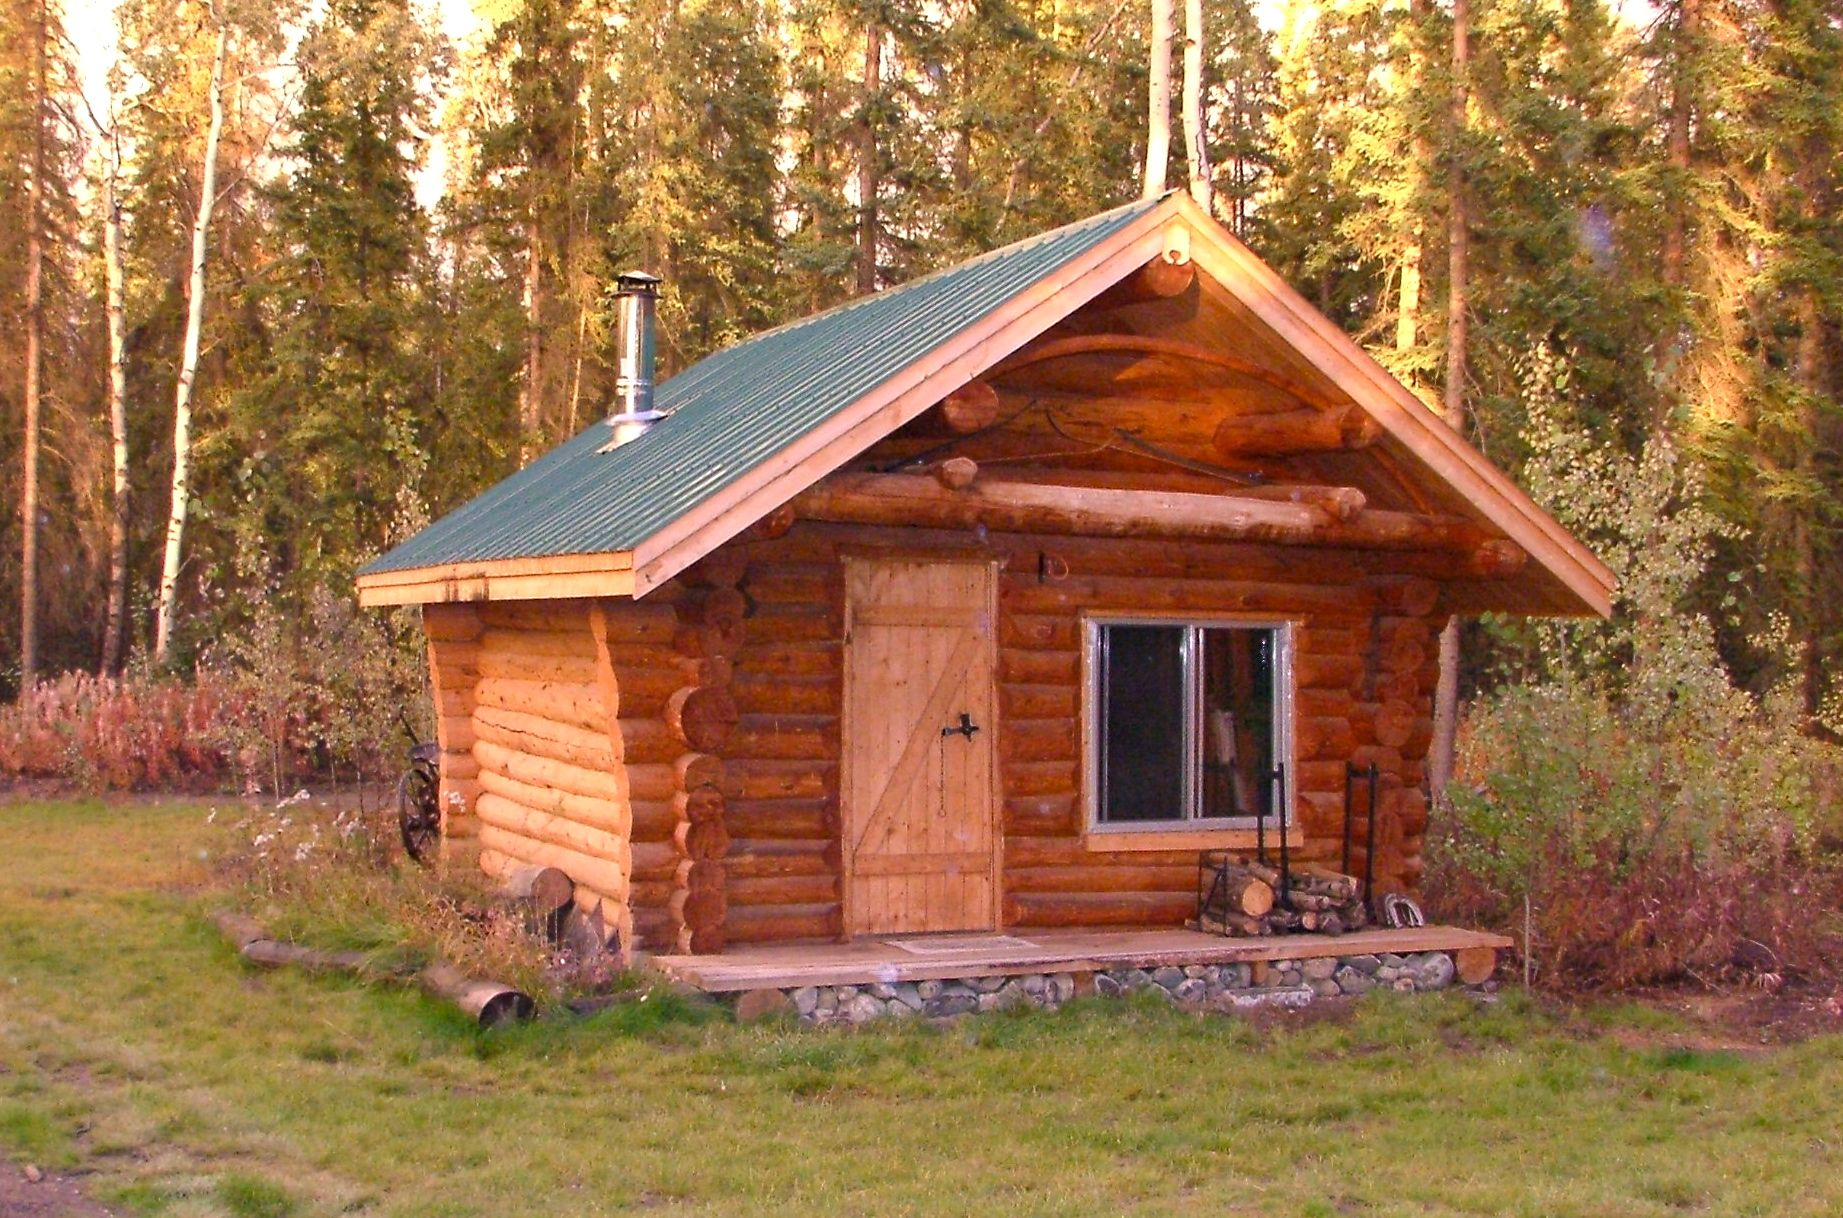 My cozy 12 x 16 foot log cabin   Micro-Mansions Blog   little ...